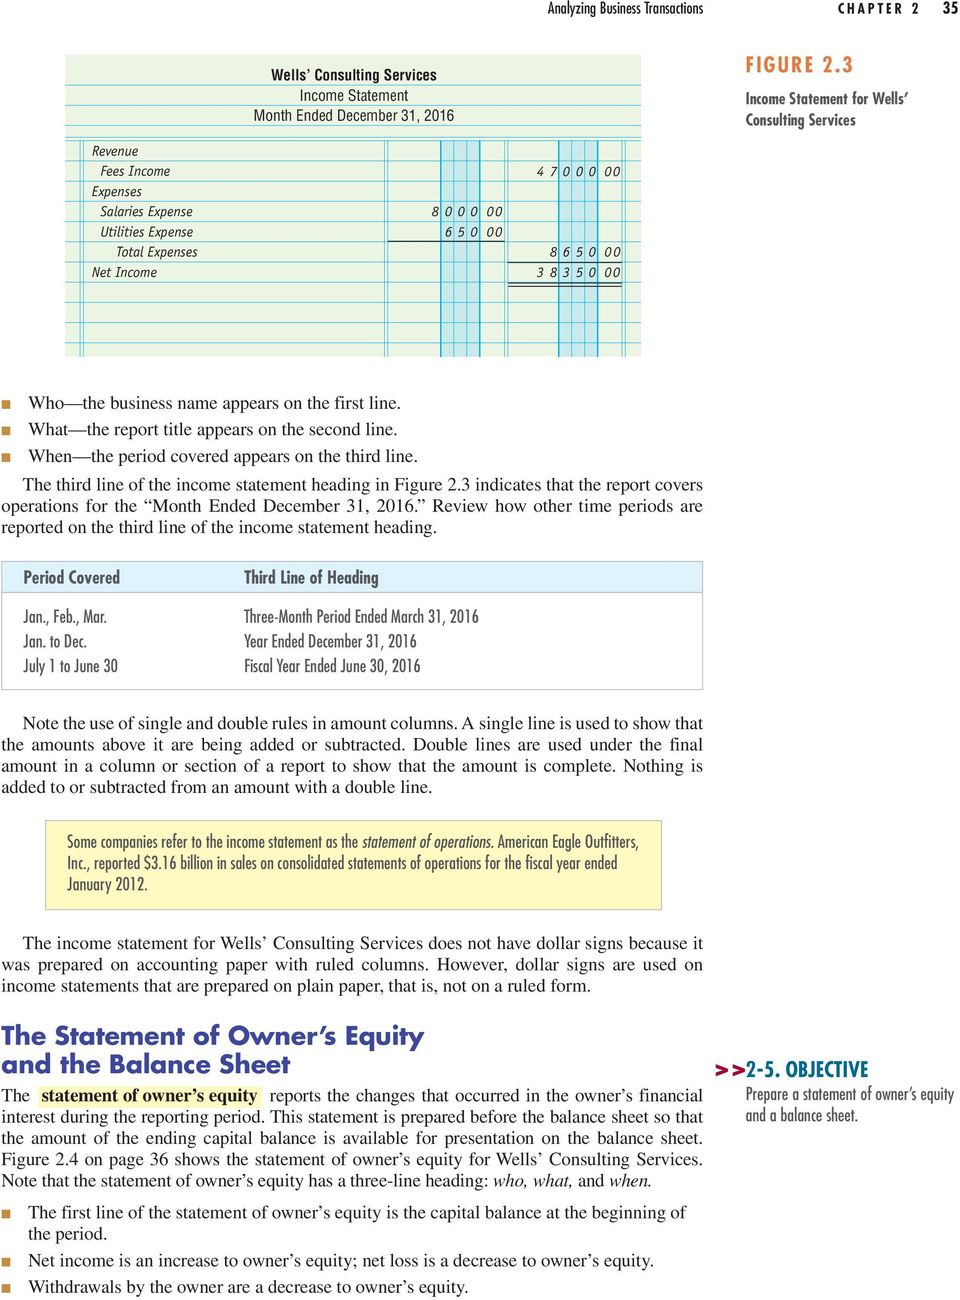 name appears on the first line. What the report title appears on the second line. When the period covered appears on the third line. The third line of the income statement heading in Figure 2.